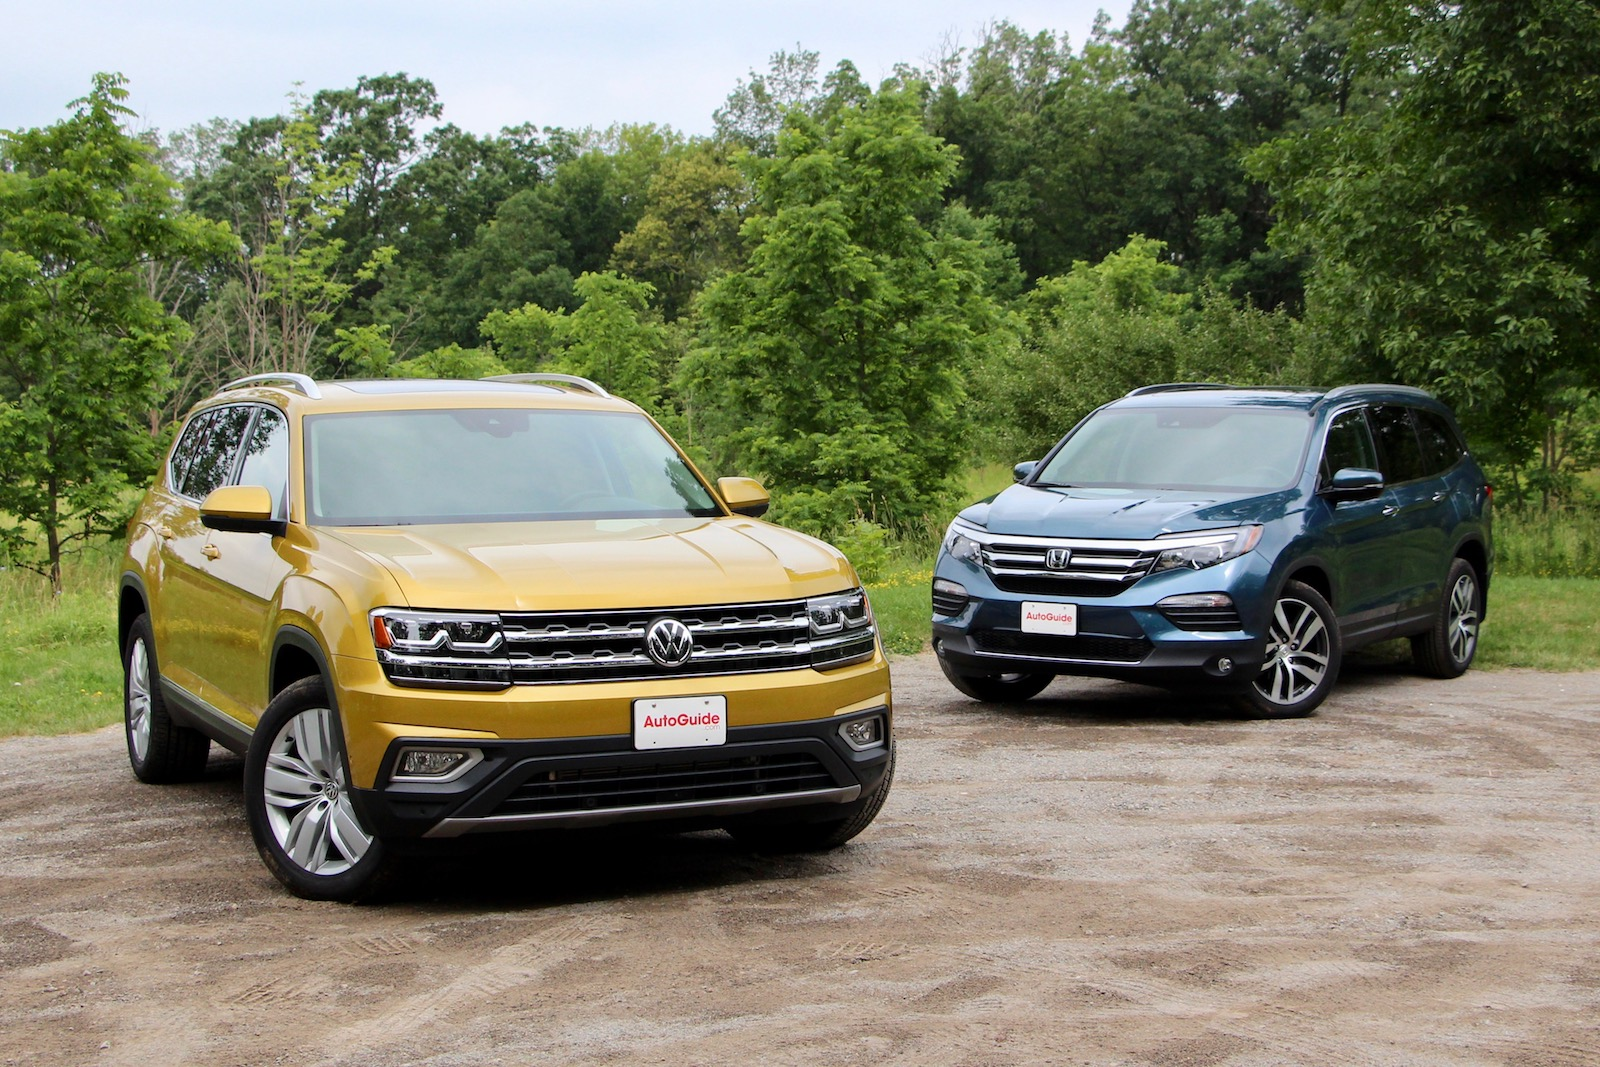 2018 volkswagen atlas vs 2017 honda pilot comparison test for Honda odyssey pilot